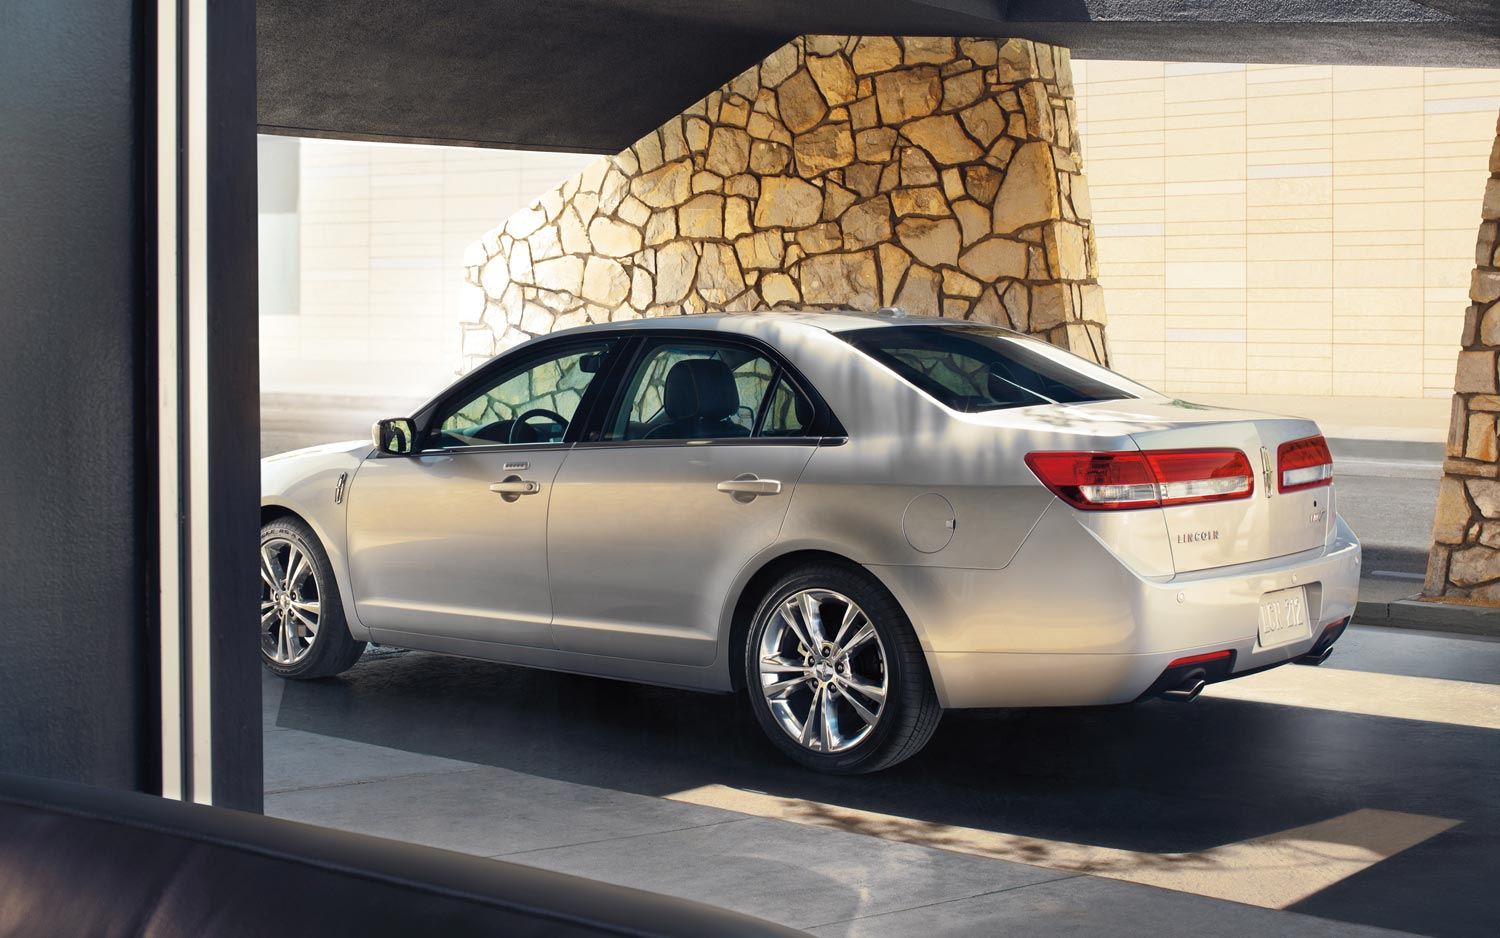 Lincoln MKZ #18